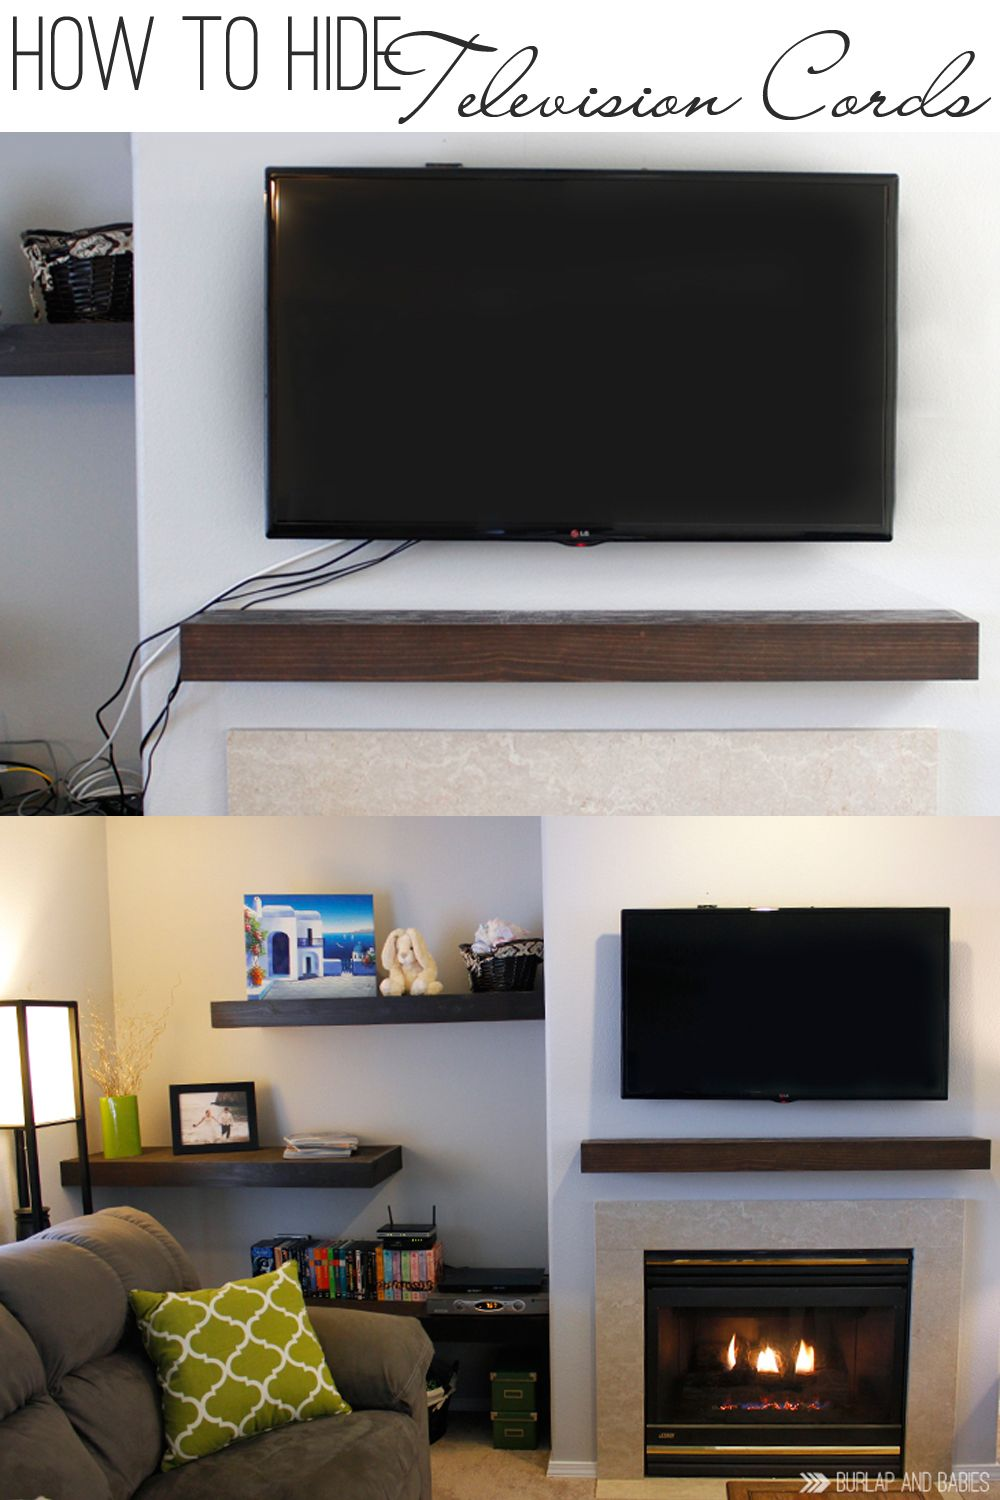 How to Hide TV Cords Once and For All! | Pinterest | Hide tv, Cord ...